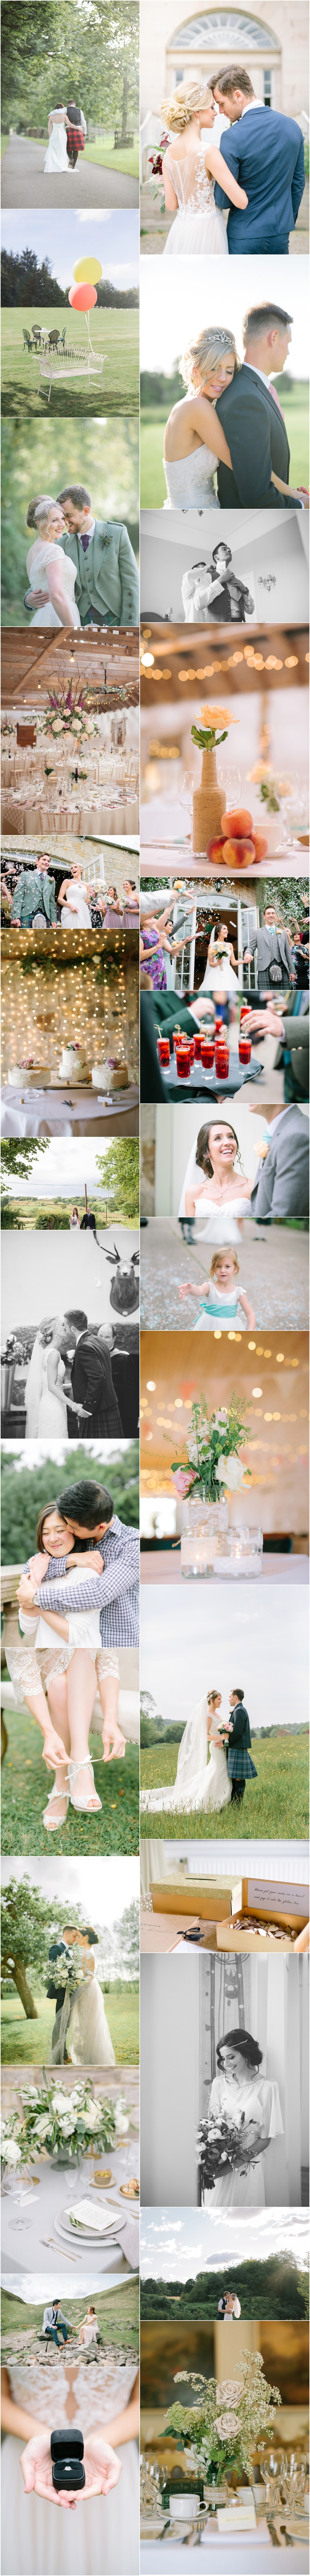 suzanne_li_photography_scottishweddings_0006.jpg